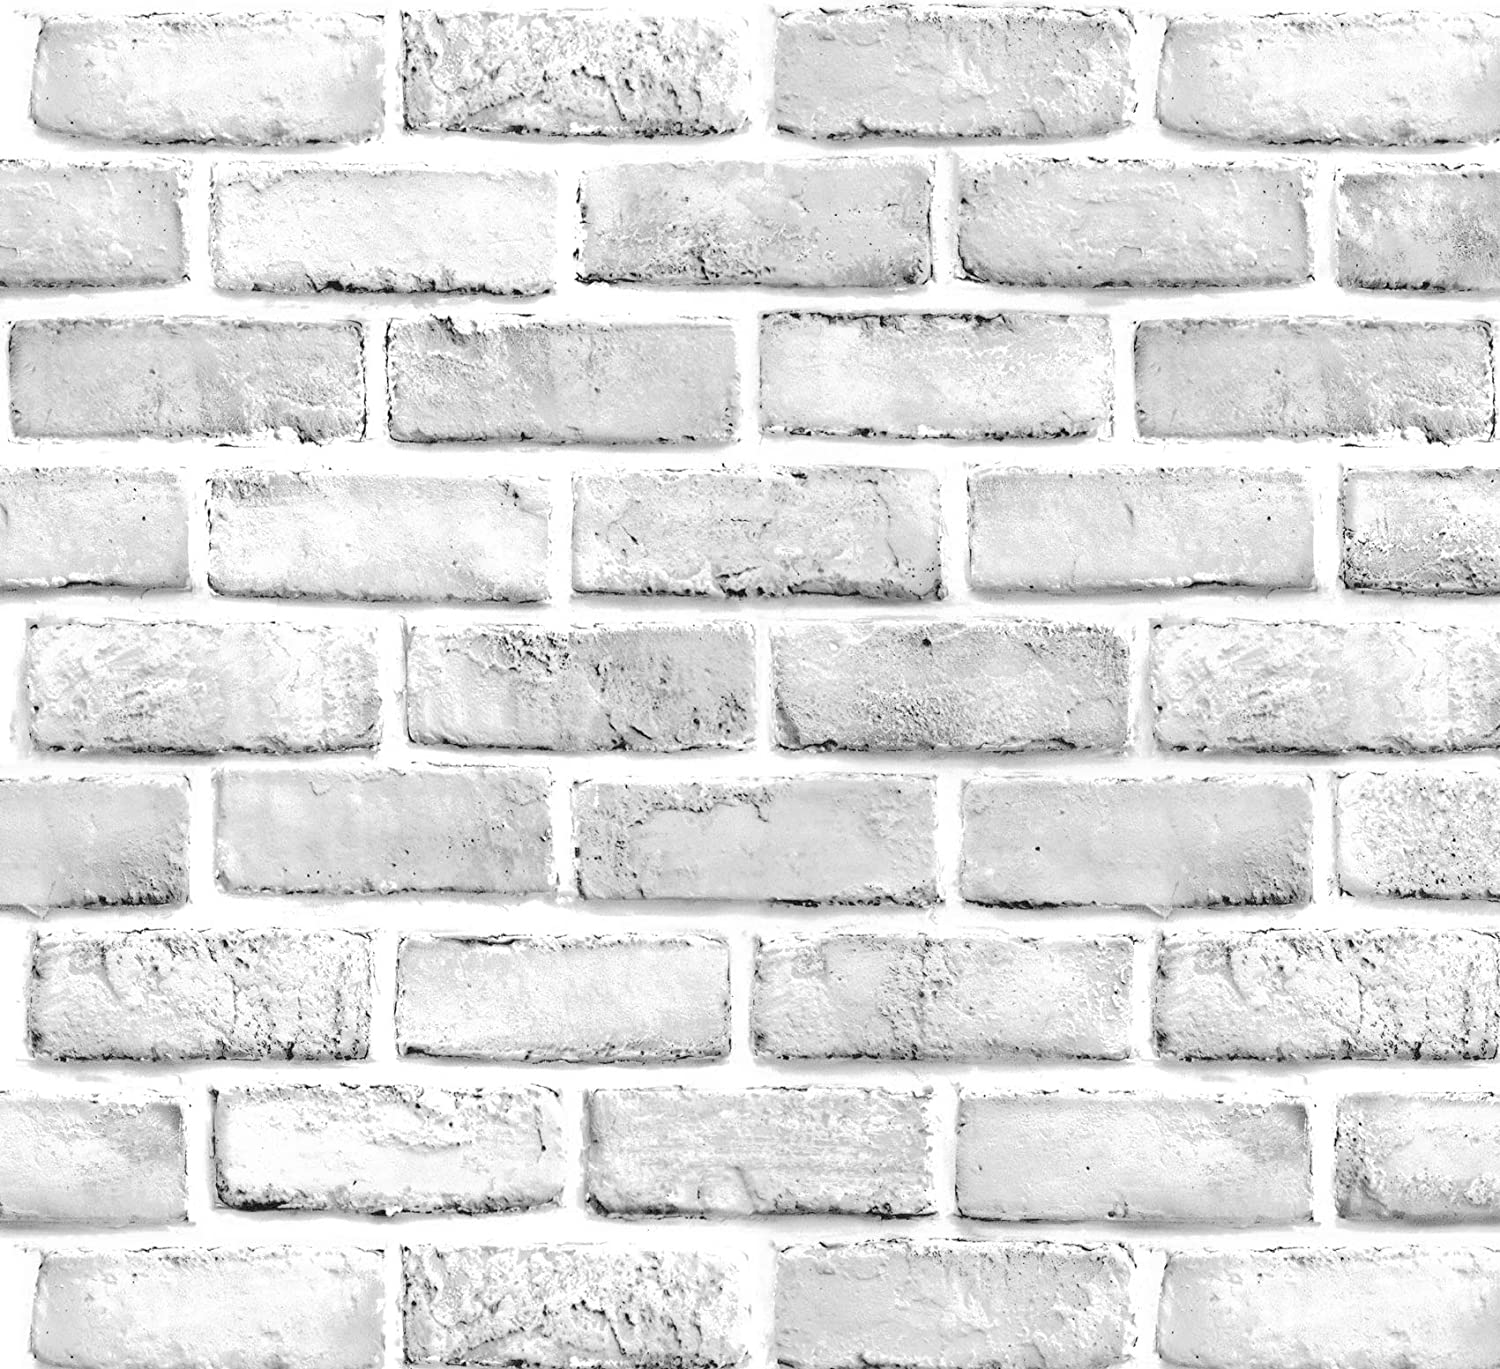 White Brick Wallpaper Brick Peel And Stick Wallpaper Contact Paper Or Wall Paper Self Adhesive Wallpaper Easily Removable Wallpaper 1 97 Ft X 9 83 Ft 23 6 X 118 Wallpaper Amazon Canada